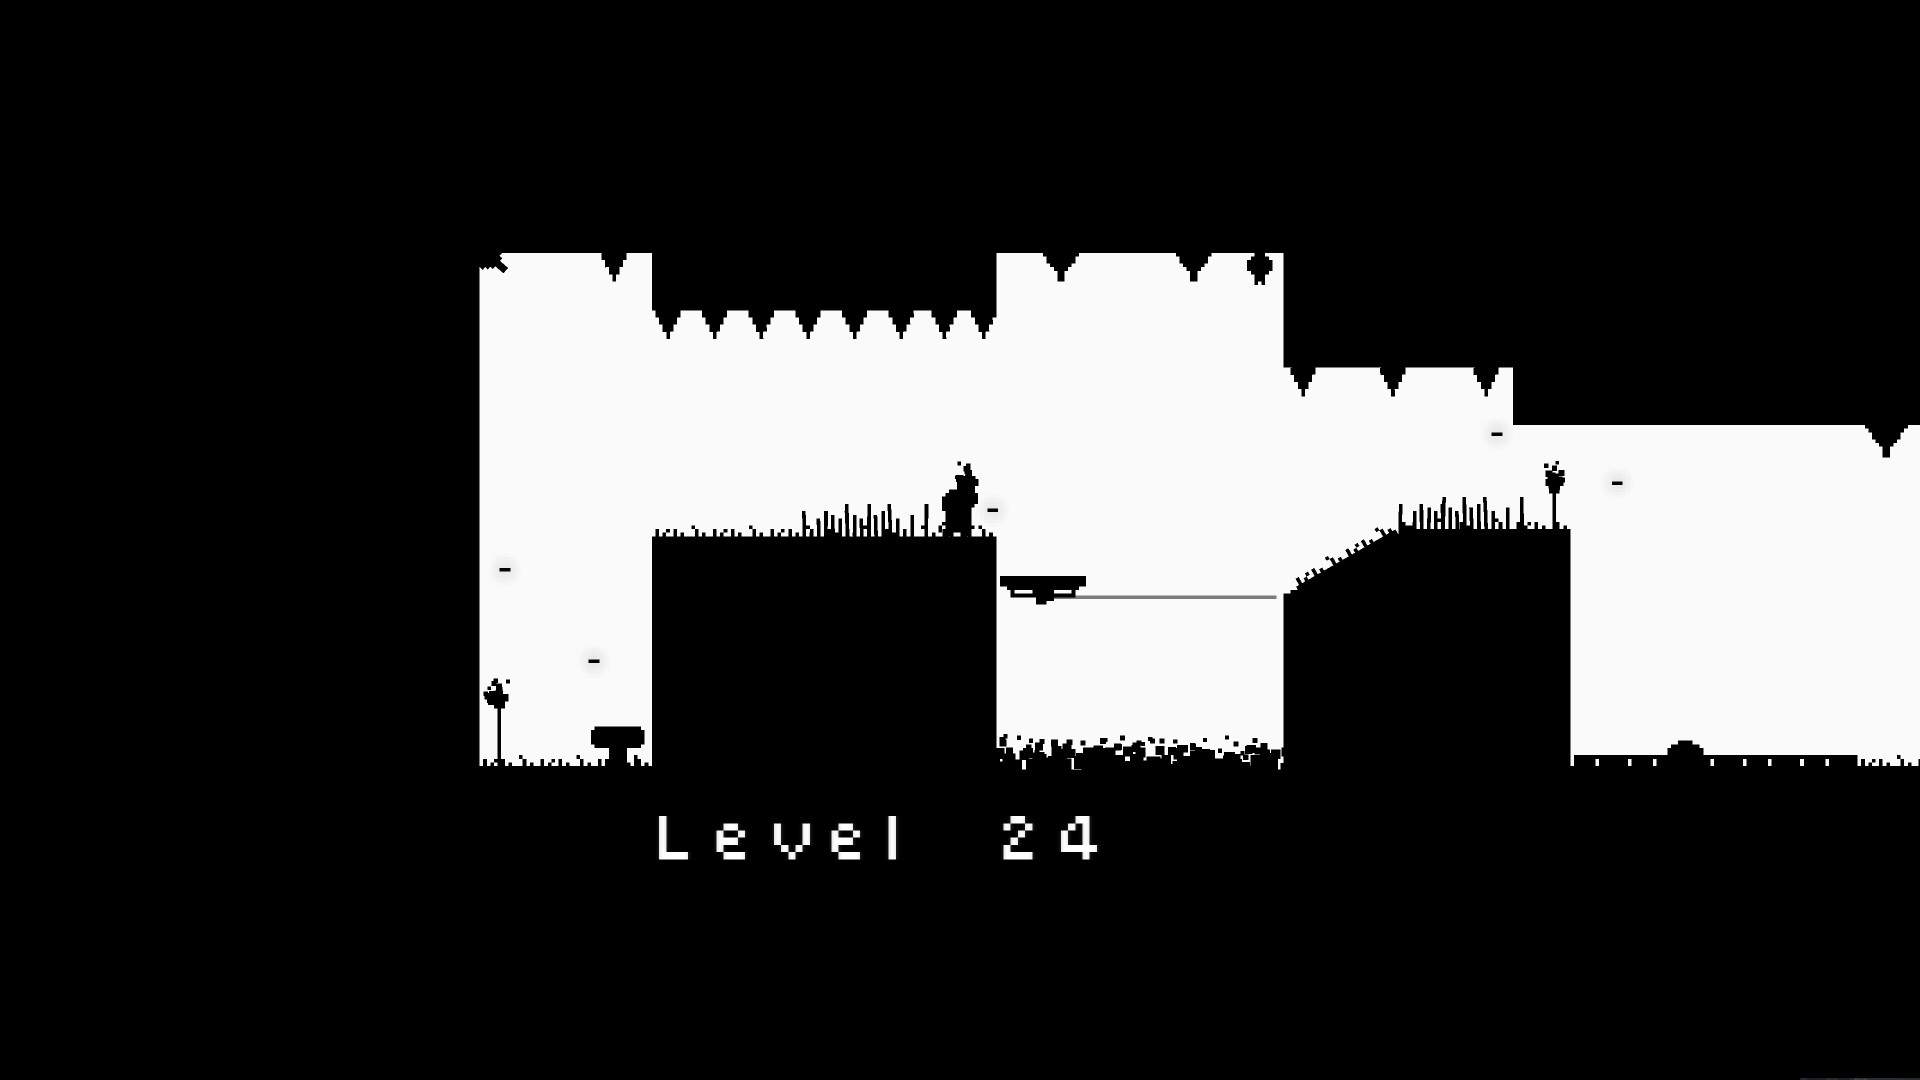 Blaite level 24. Spikes line the ceiling, which in turn becomes lower throughout the level